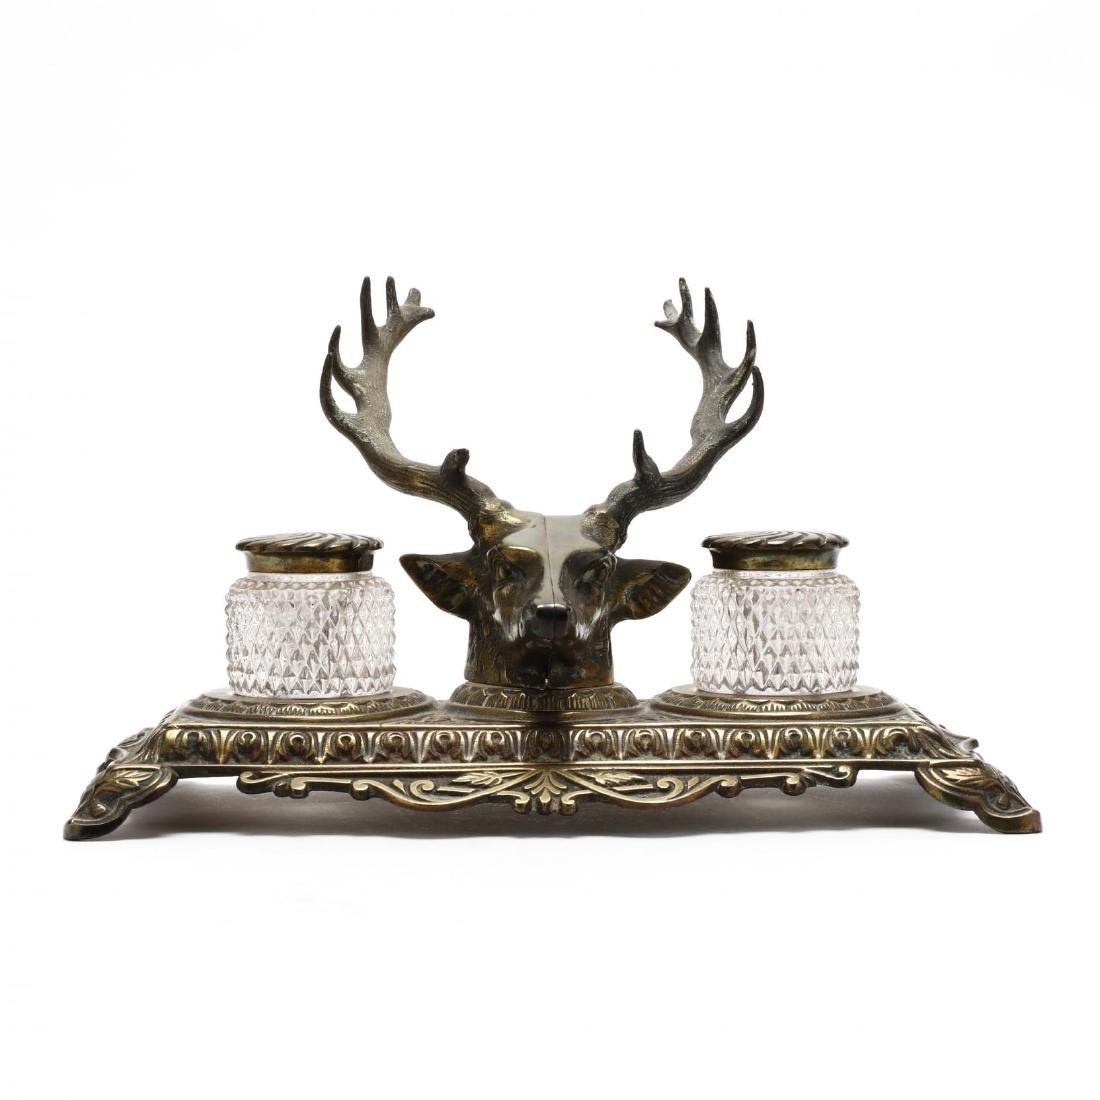 Bradley and Hubbard, Stag Form Inkwell